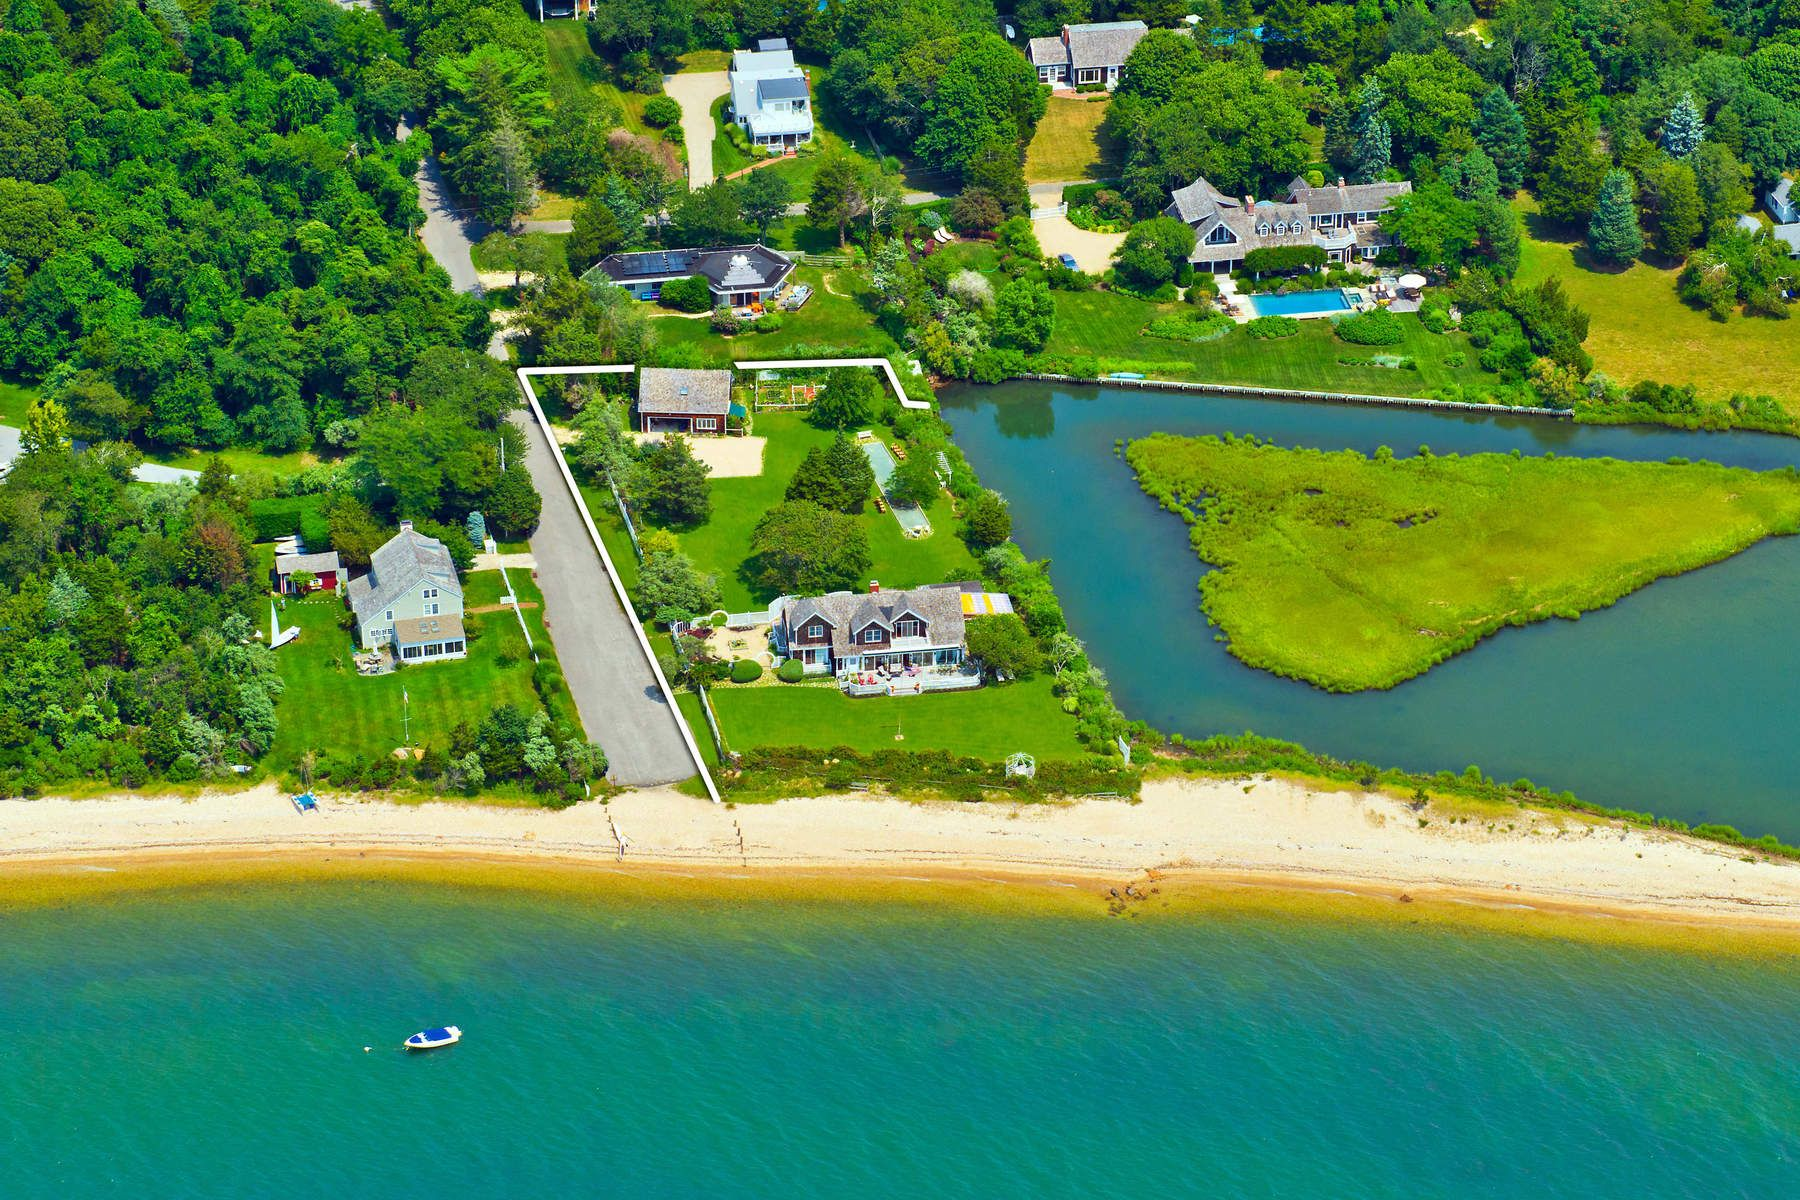 Single Family Homes for Sale at Sag Harbor/North Haven Waterfront 121 Sunset Beach Road Sag Harbor, New York 11963 United States